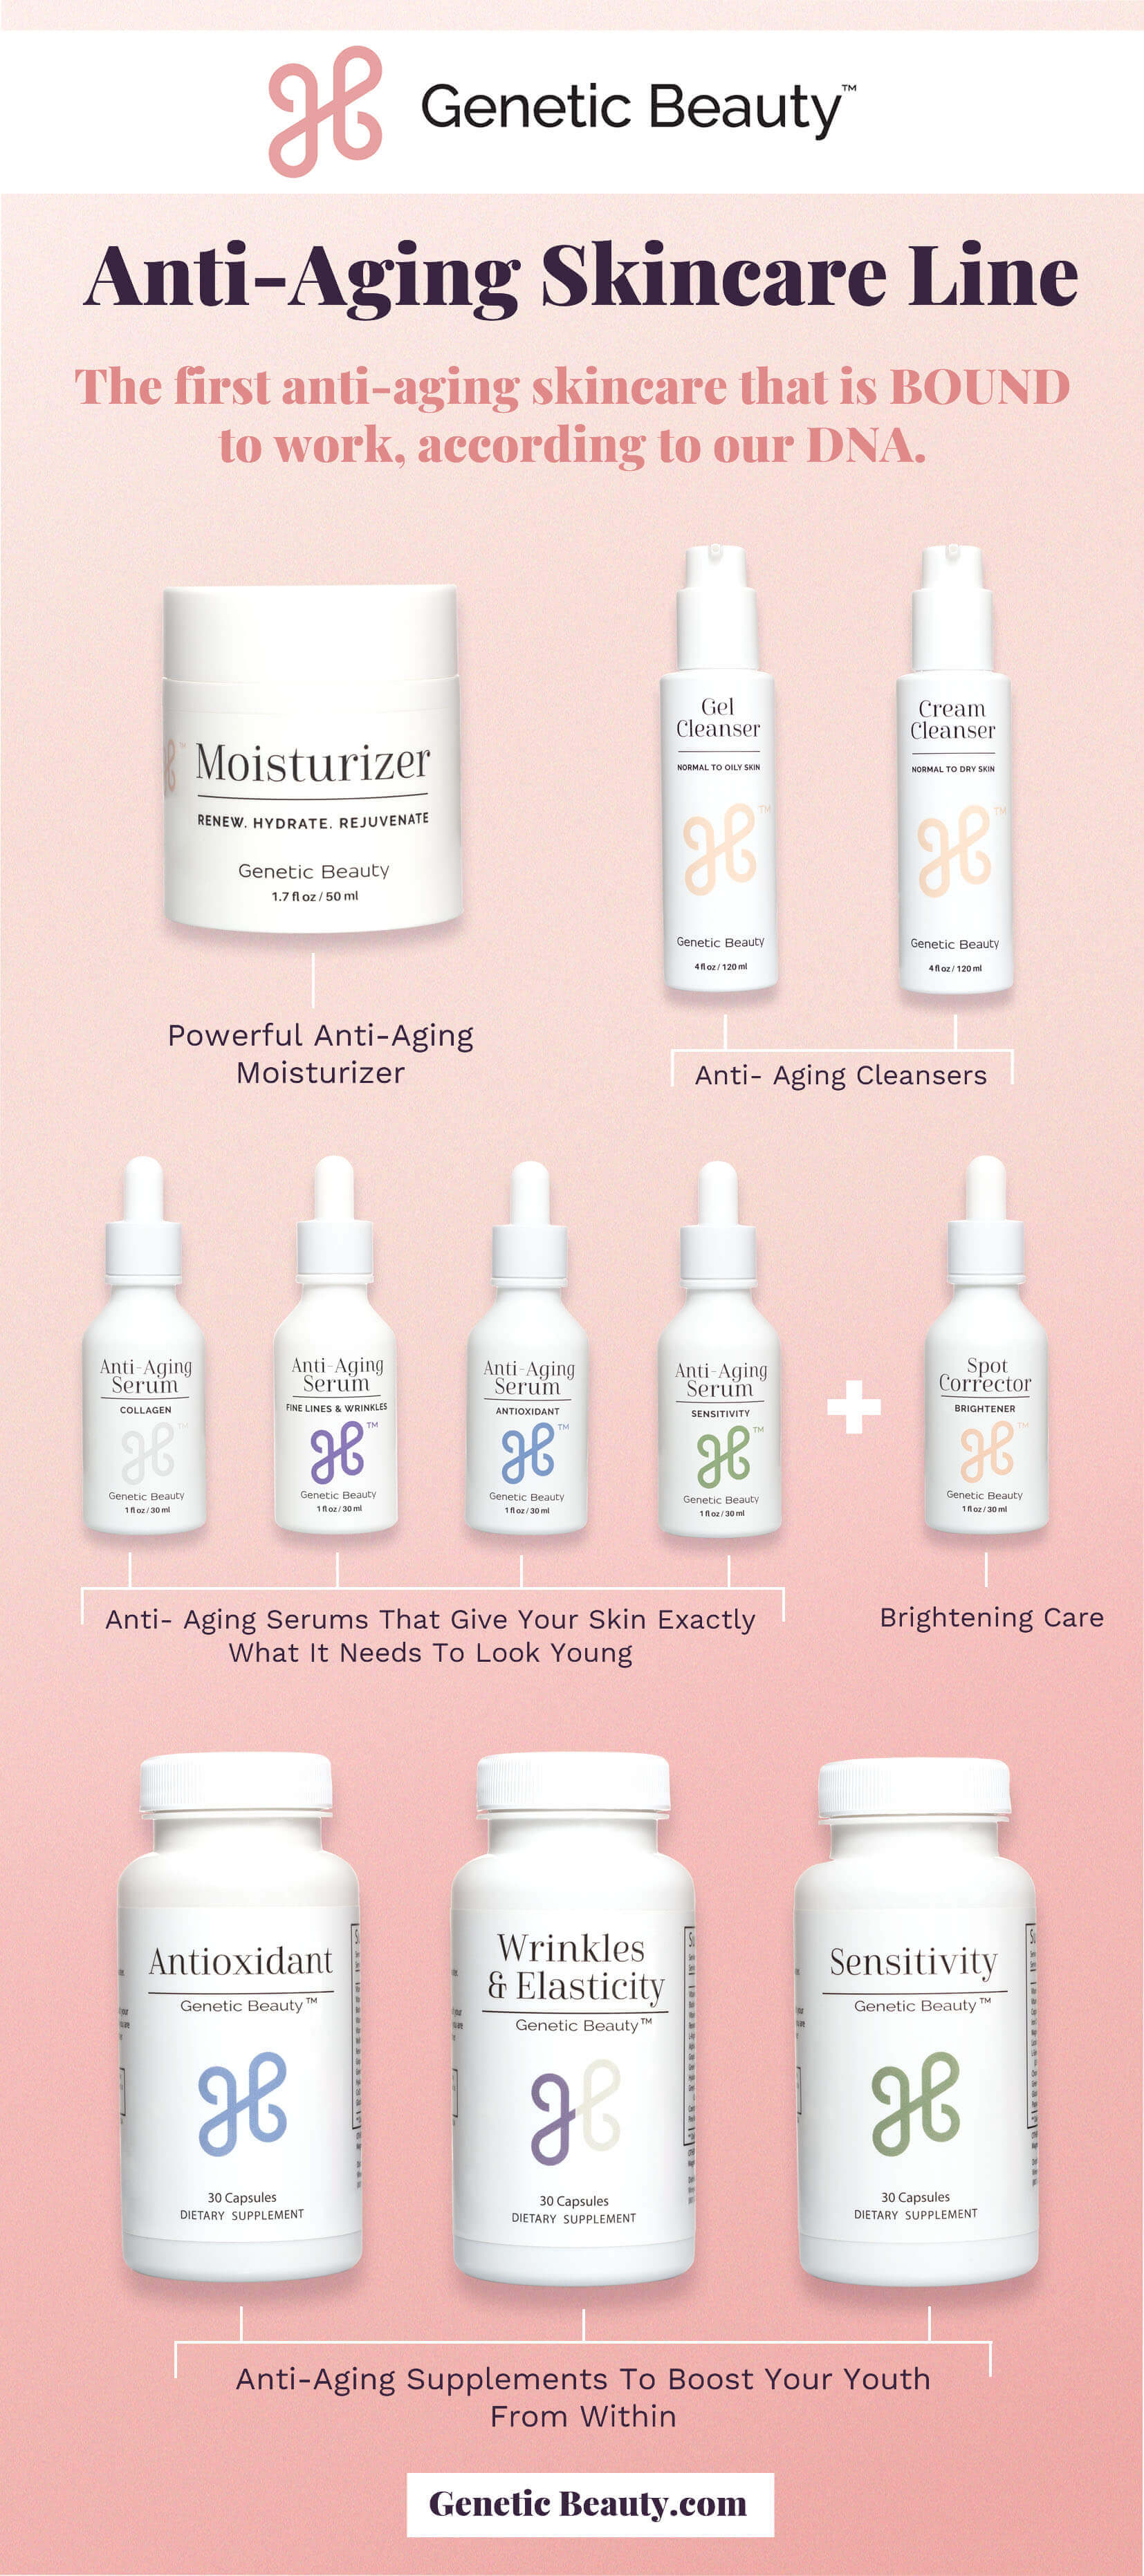 Genetic Beauty review - skincare products infographic with explanatory text